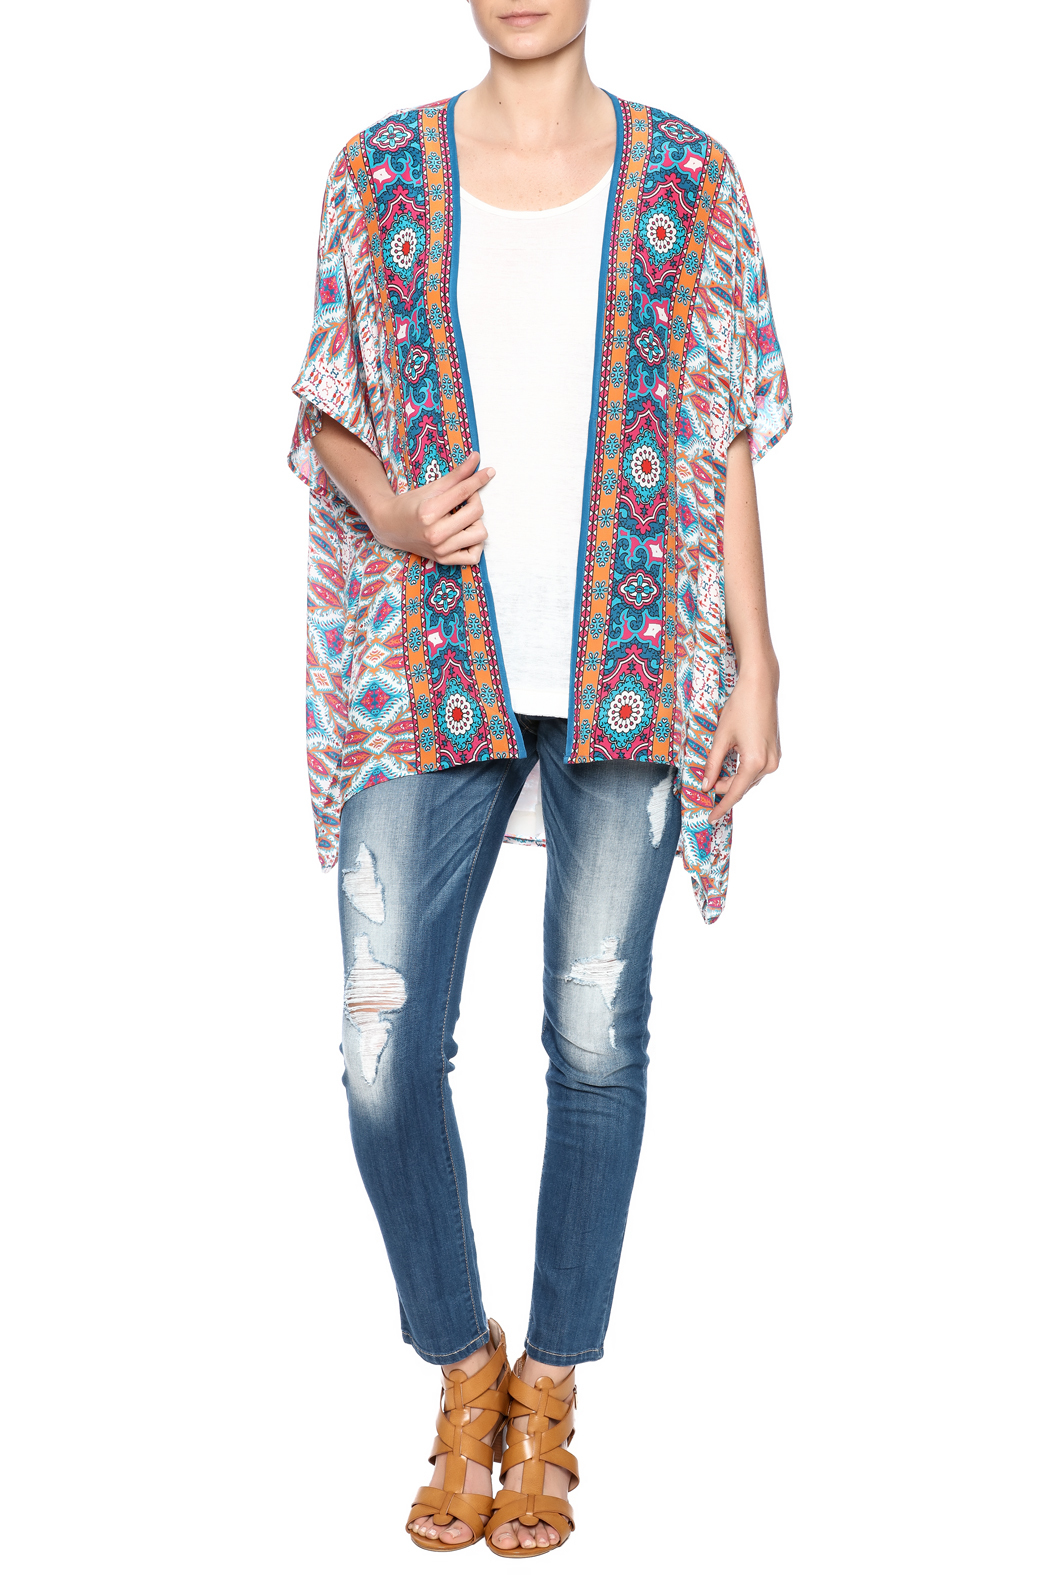 Tolani noelle print kimono from dallas by hip chic for Little hip boutique